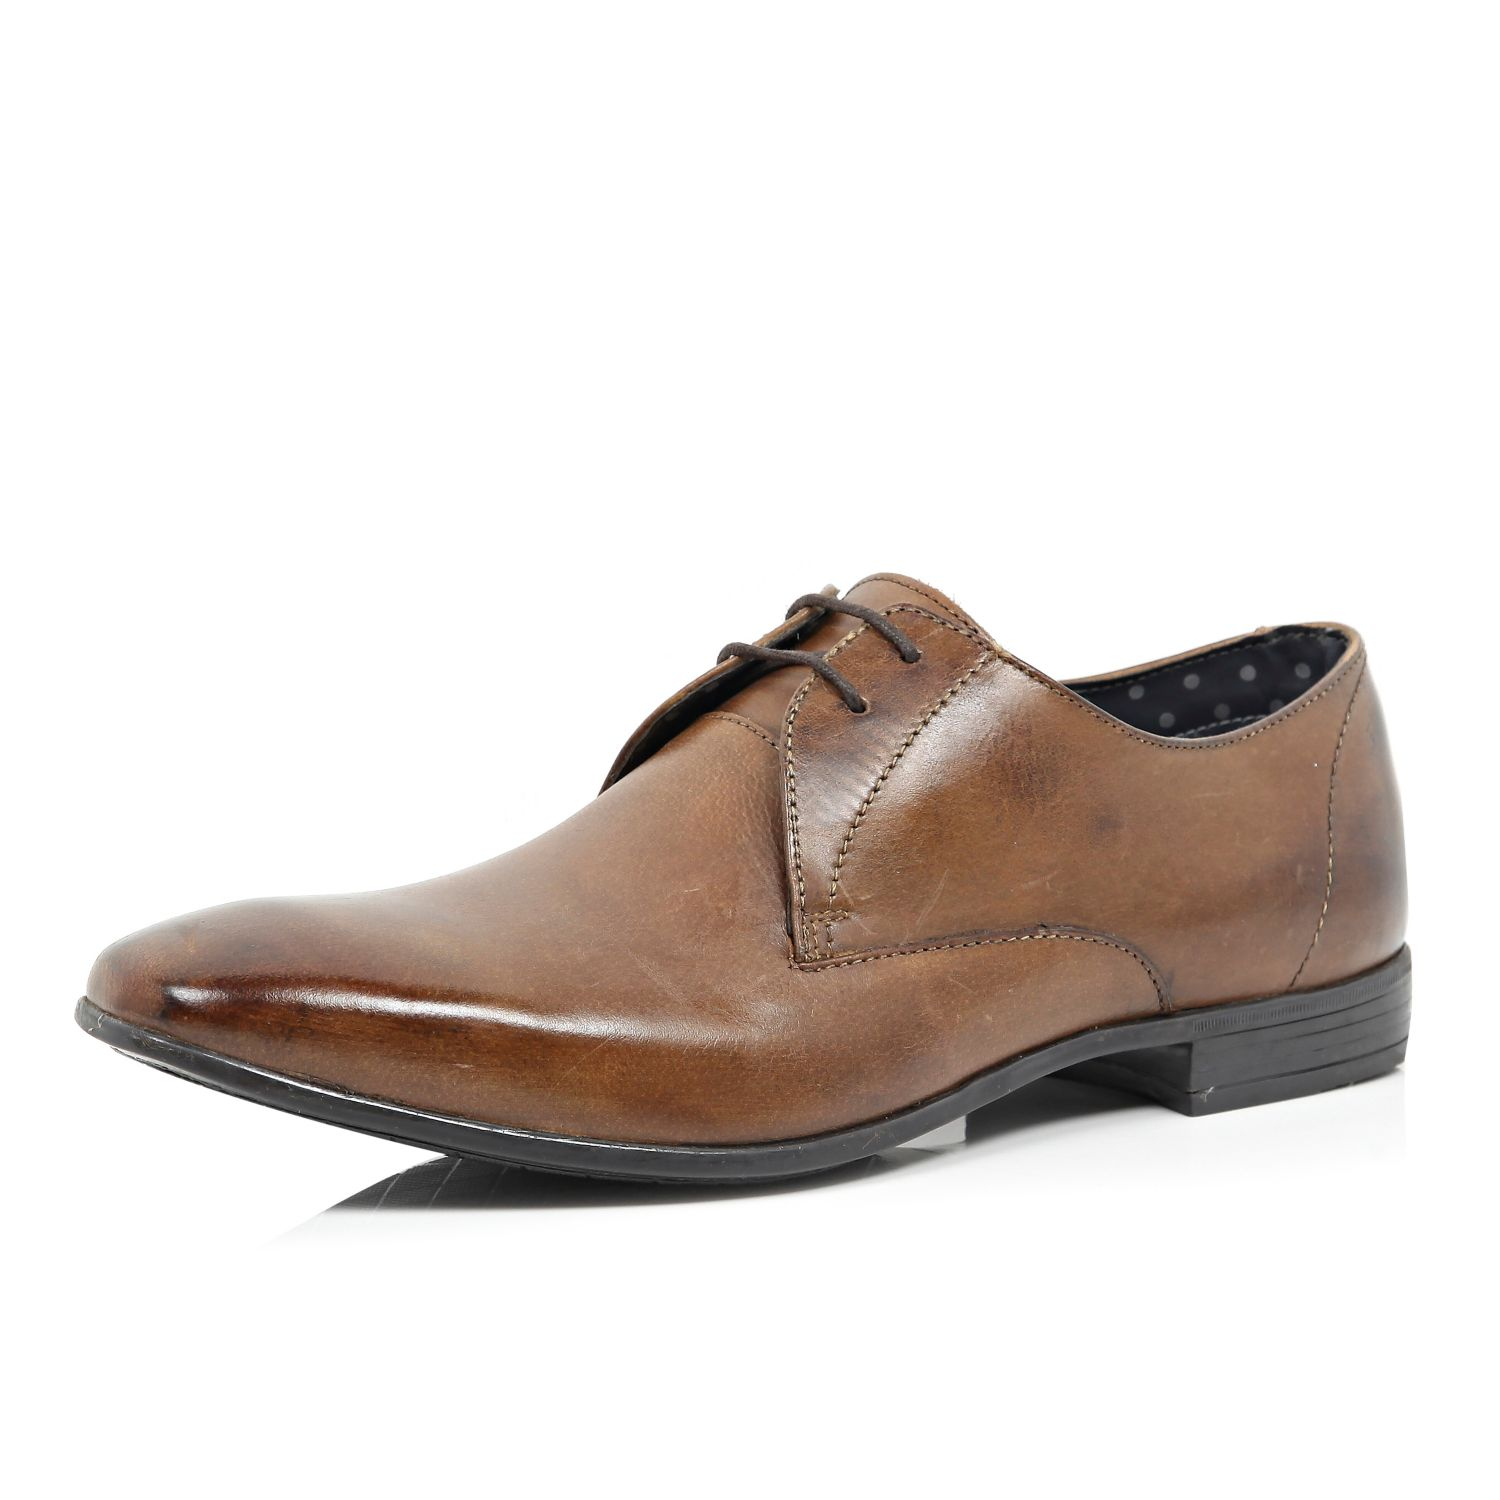 river island brown leather square toe formal lace up shoes